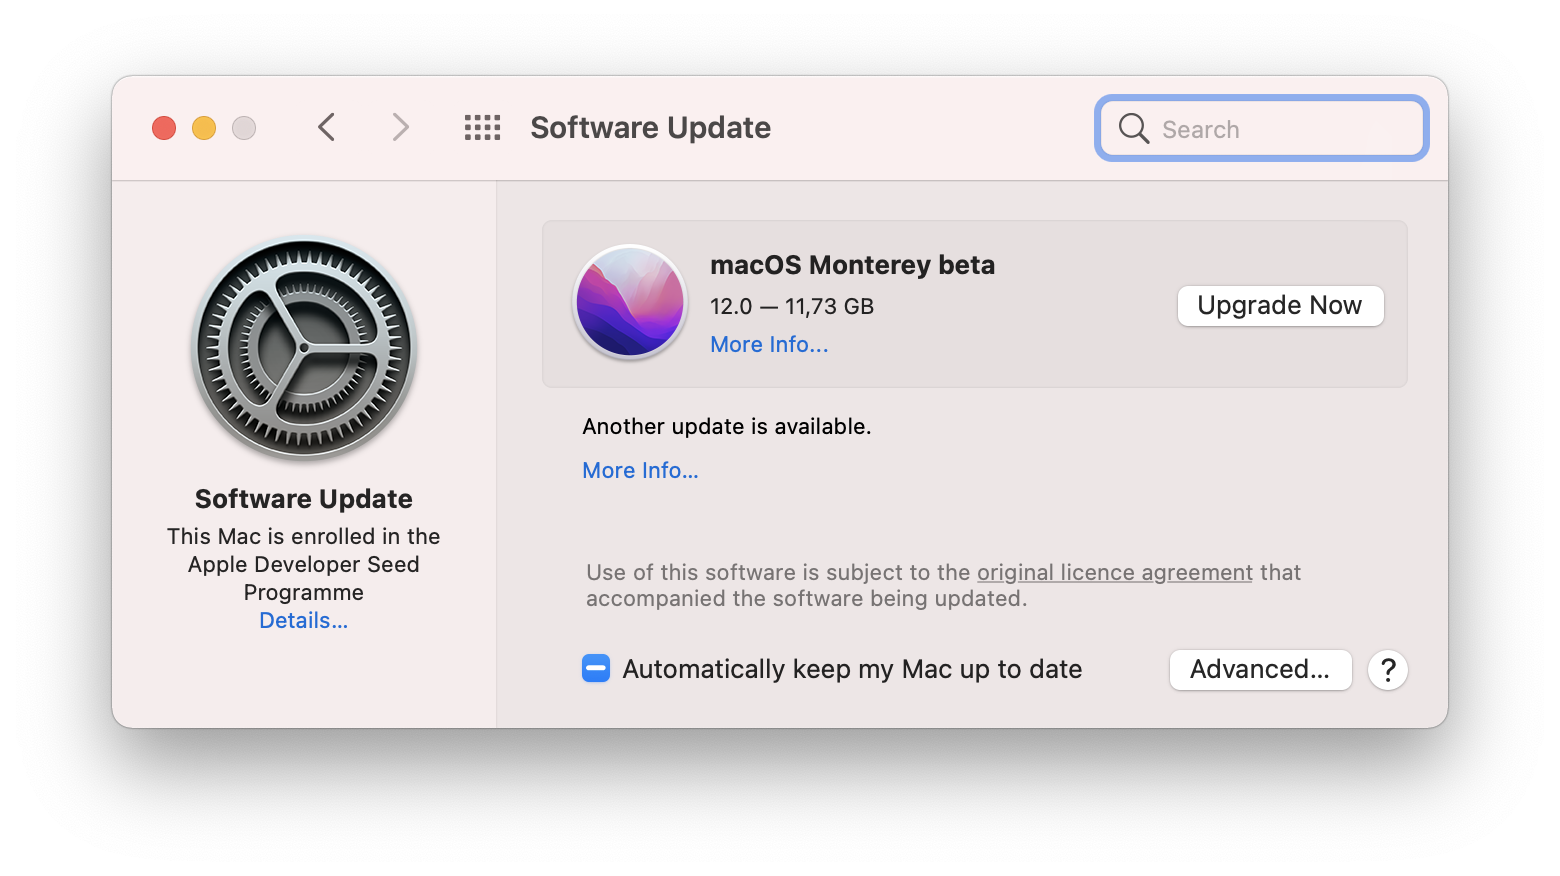 How to check for macOS Monterey update